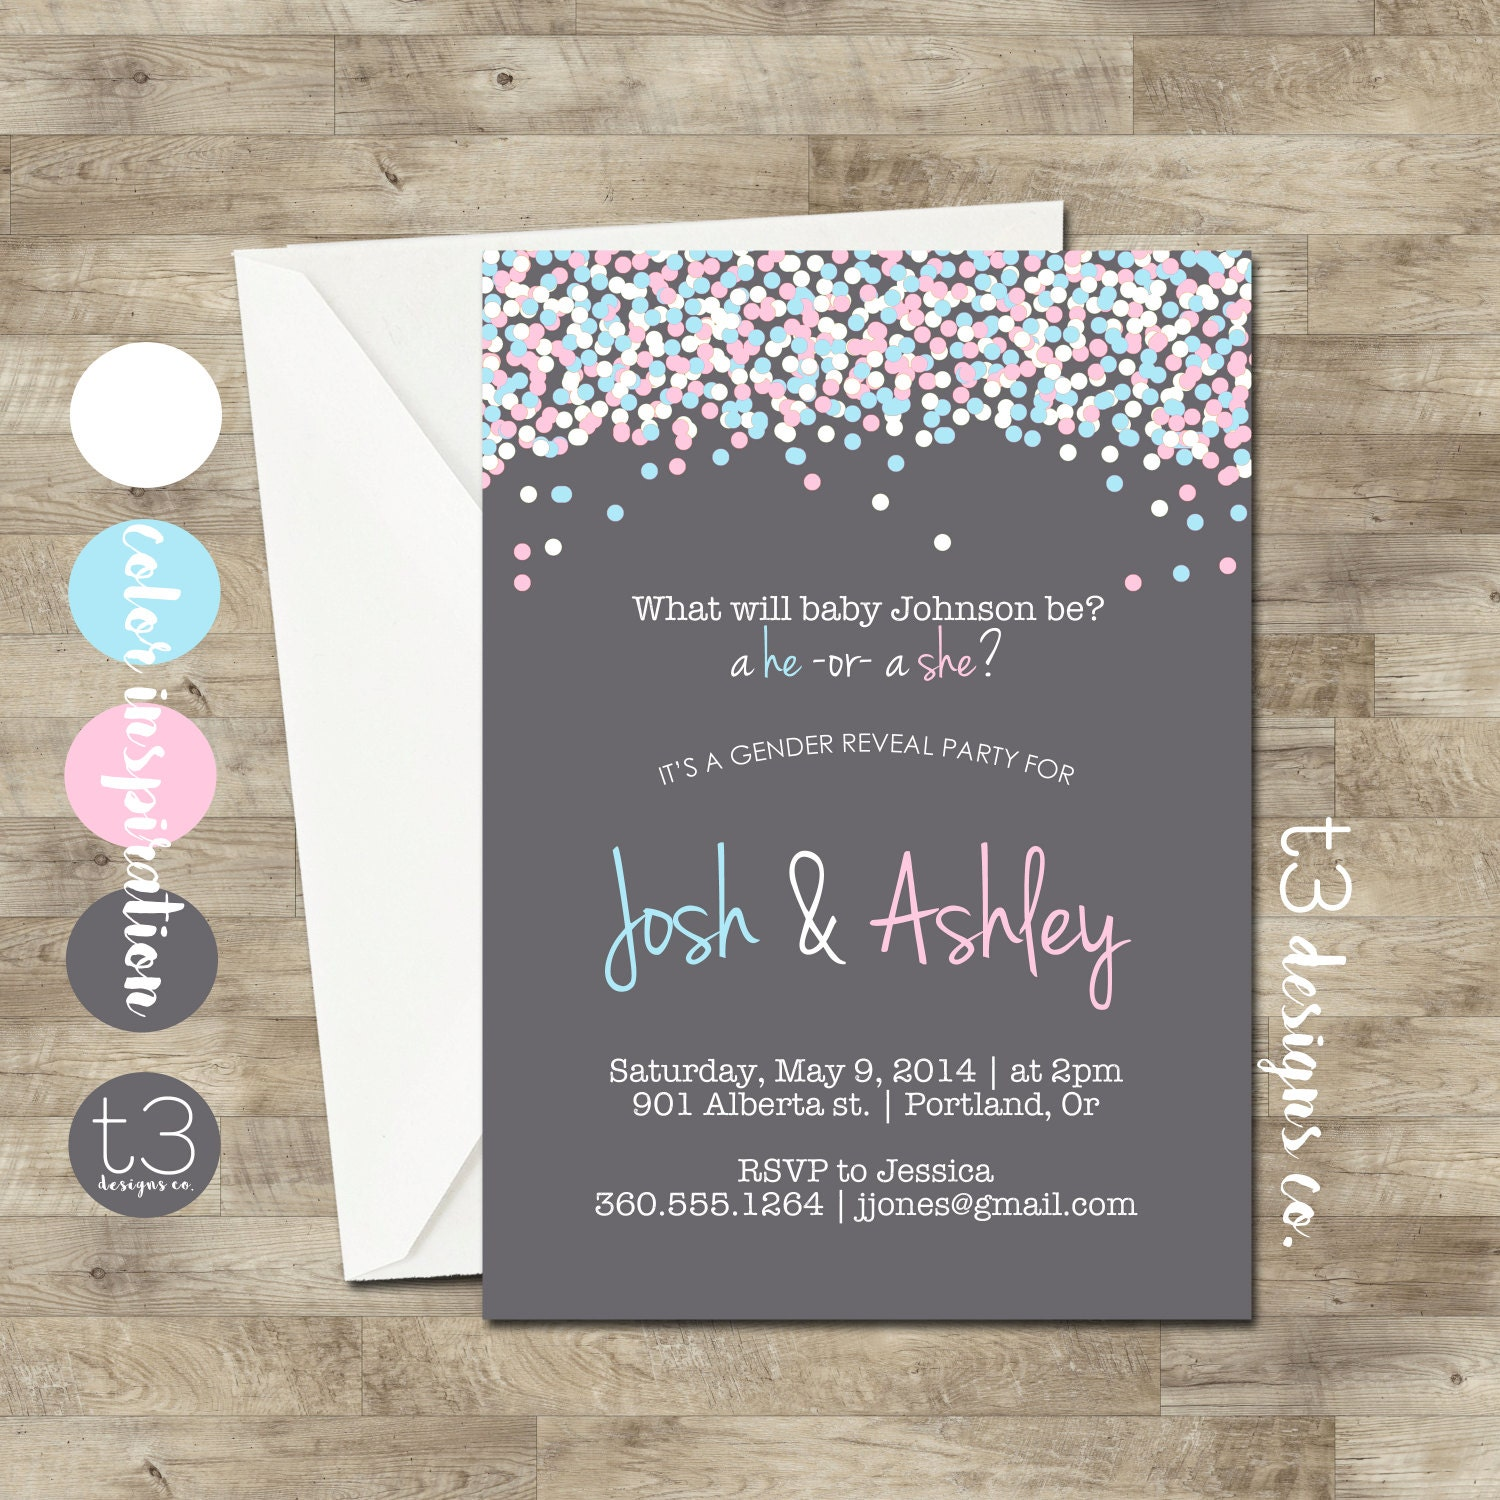 Instant Download GENDER REVEAL Invitation diy pdf Confetti Gender